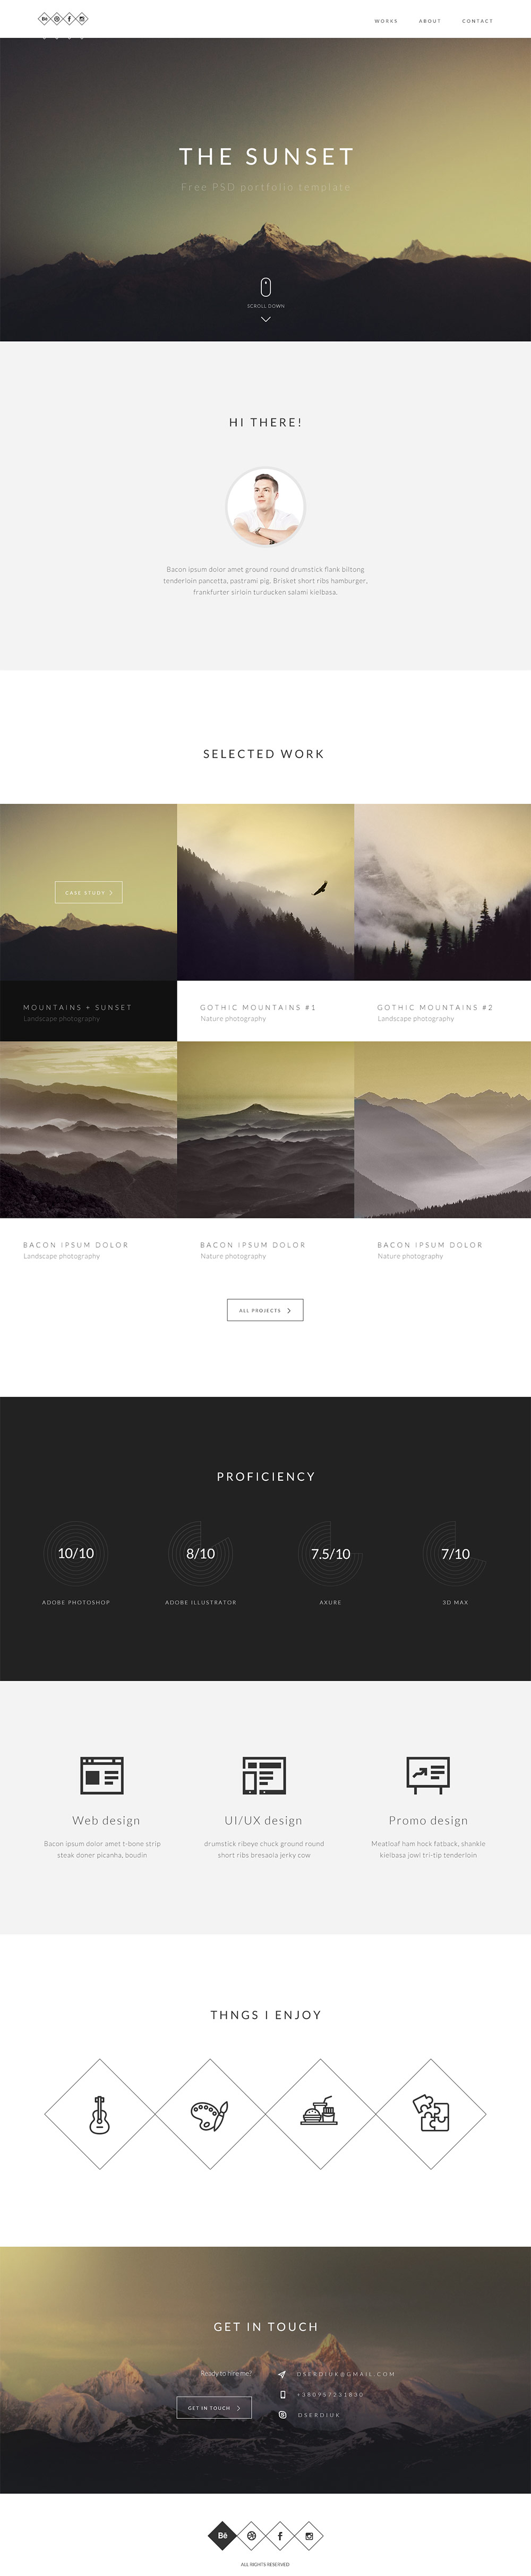 Clean One page Portfolio Website Template PSD